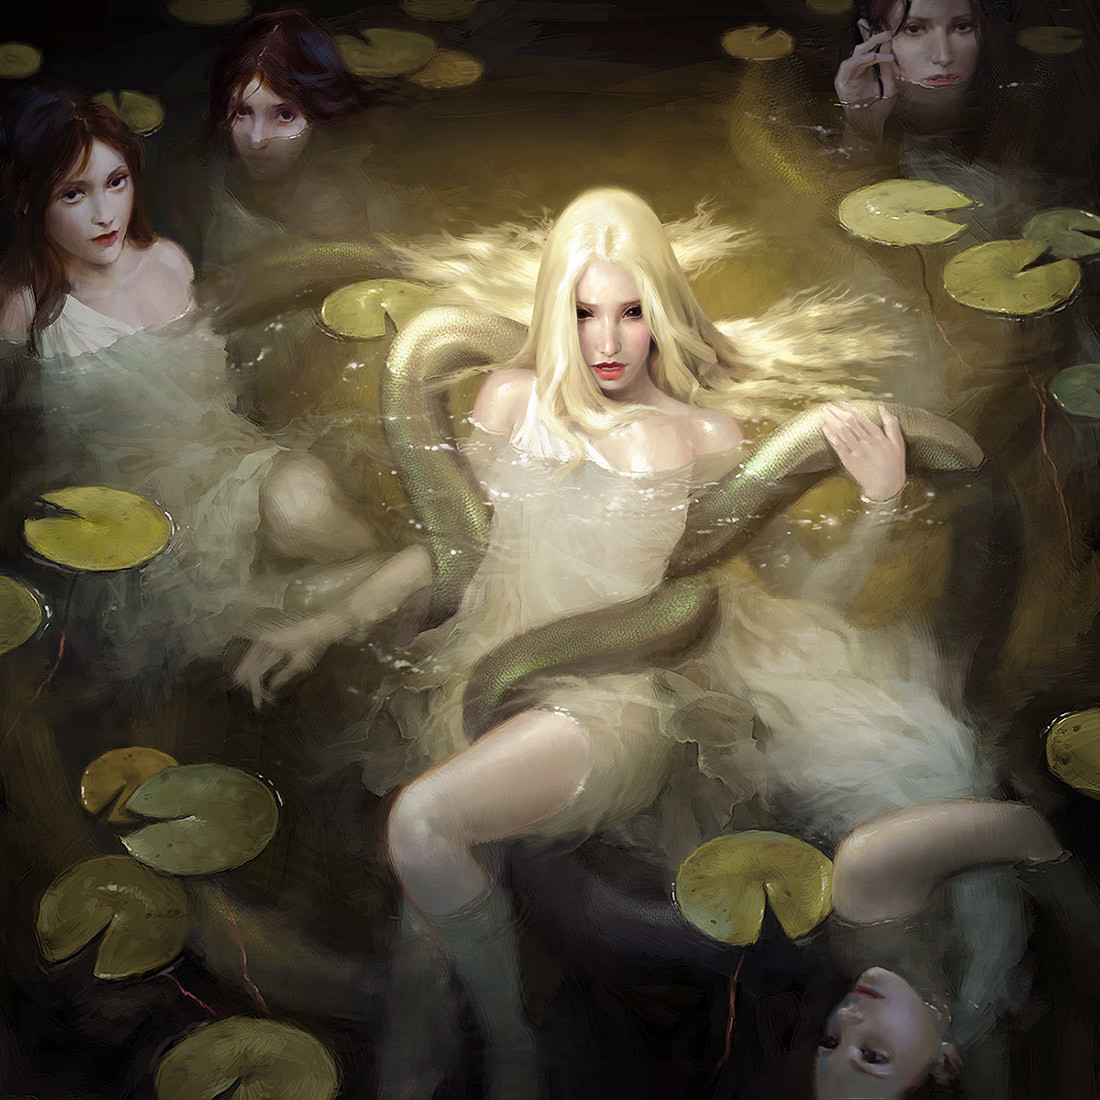 The Naiads